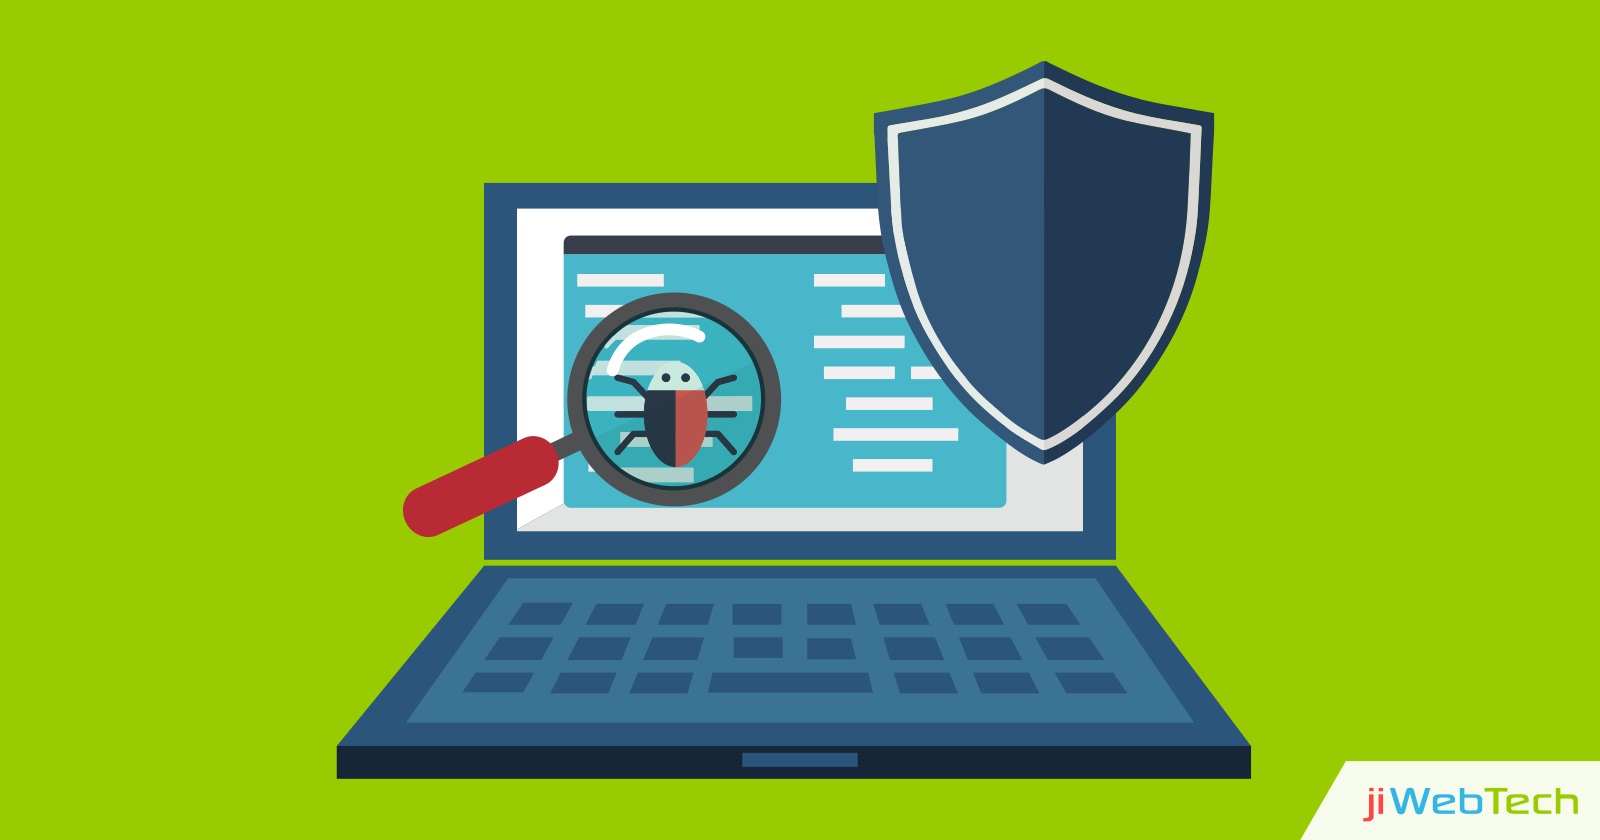 Things You Need to Know About Malware to Keep Your Website Safe